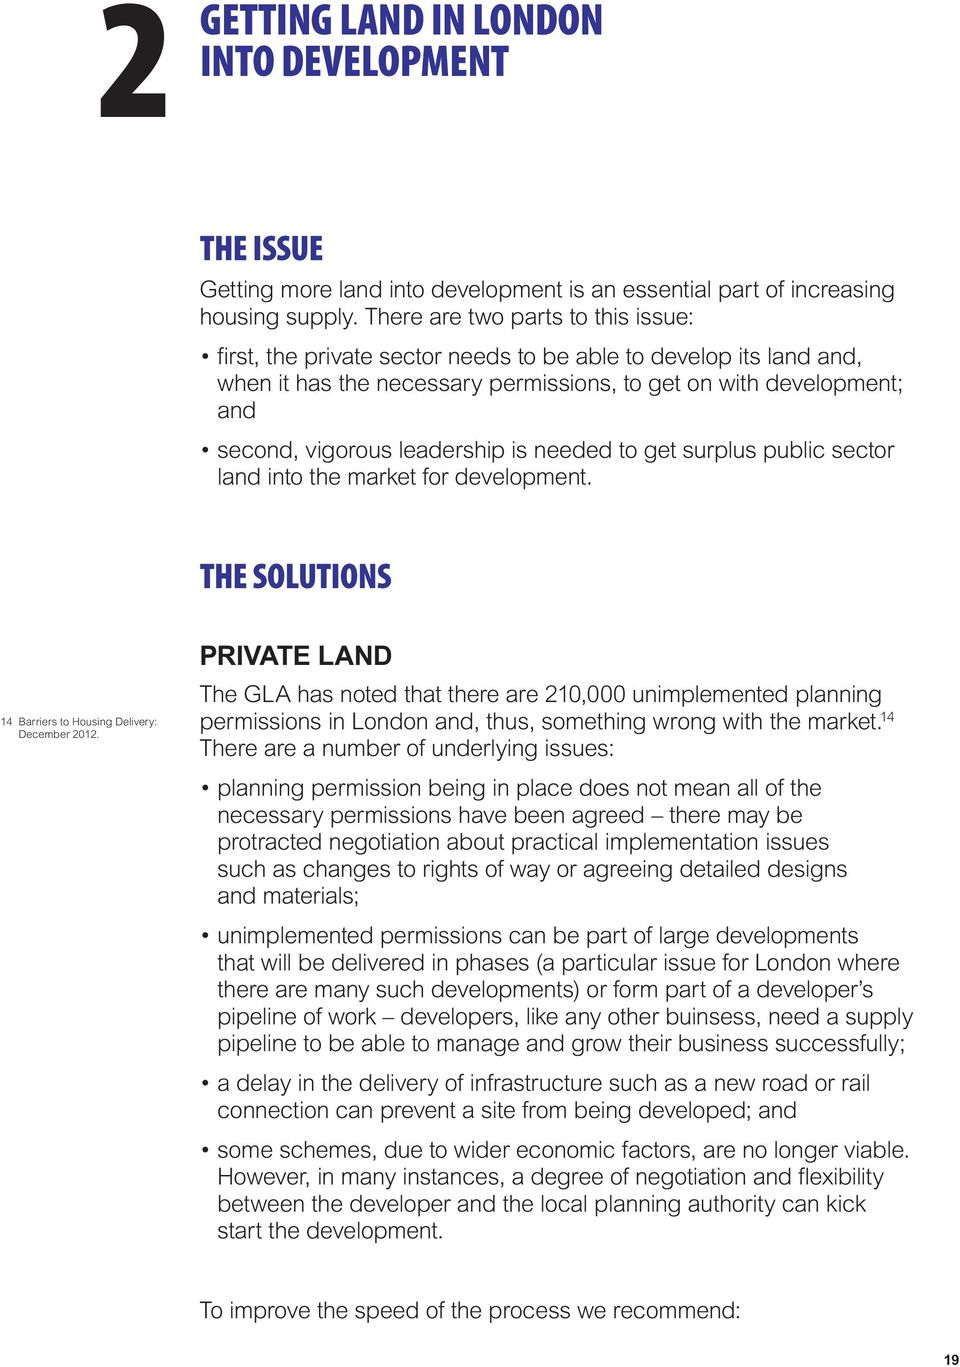 leadership is needed to get surplus public sector land into the market for development. THE SOLUTIONS 14 Barriers to Housing Delivery: December 2012.